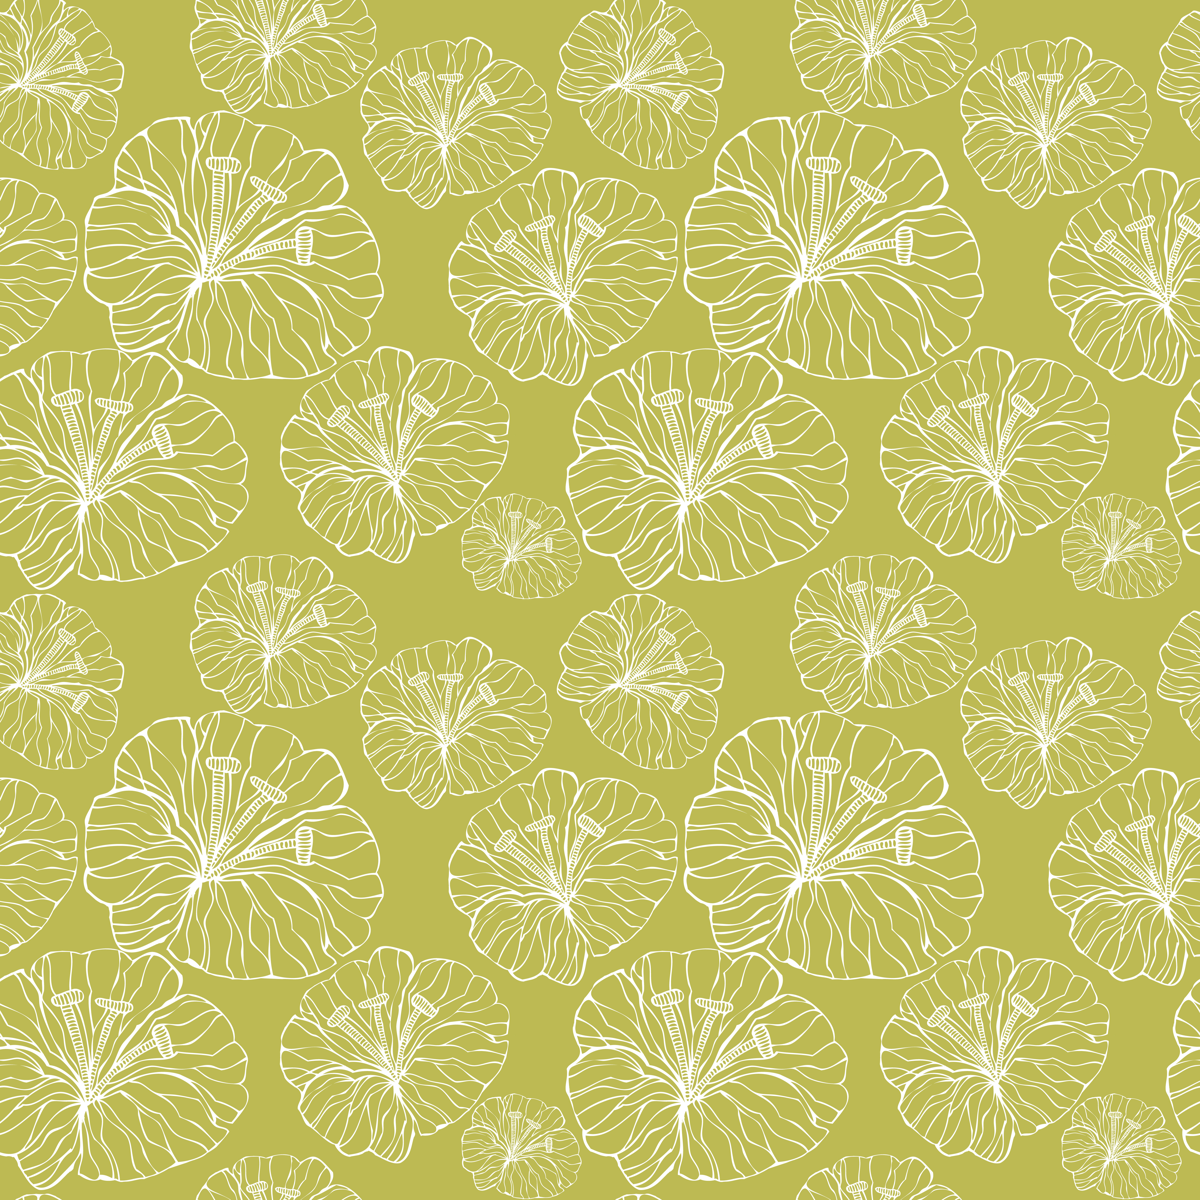 green_flowers_inwhite fabric by valentinaharper on Spoonflower - custom fabric